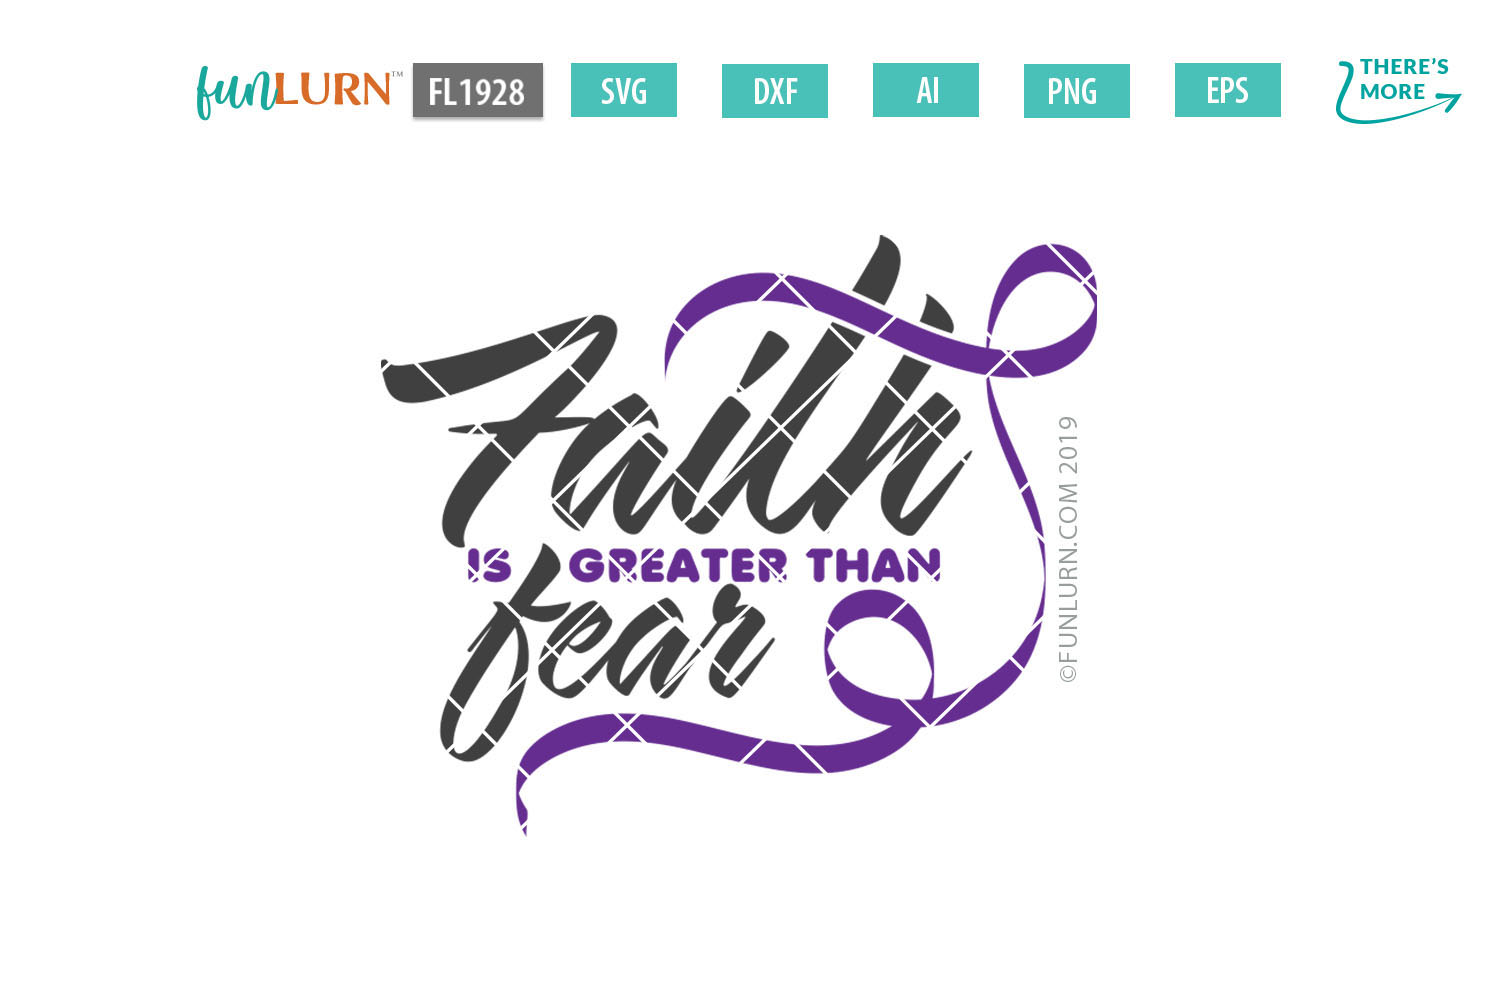 Faith is Greater Than Fear Purple Ribbon SVG Cut File example image 2